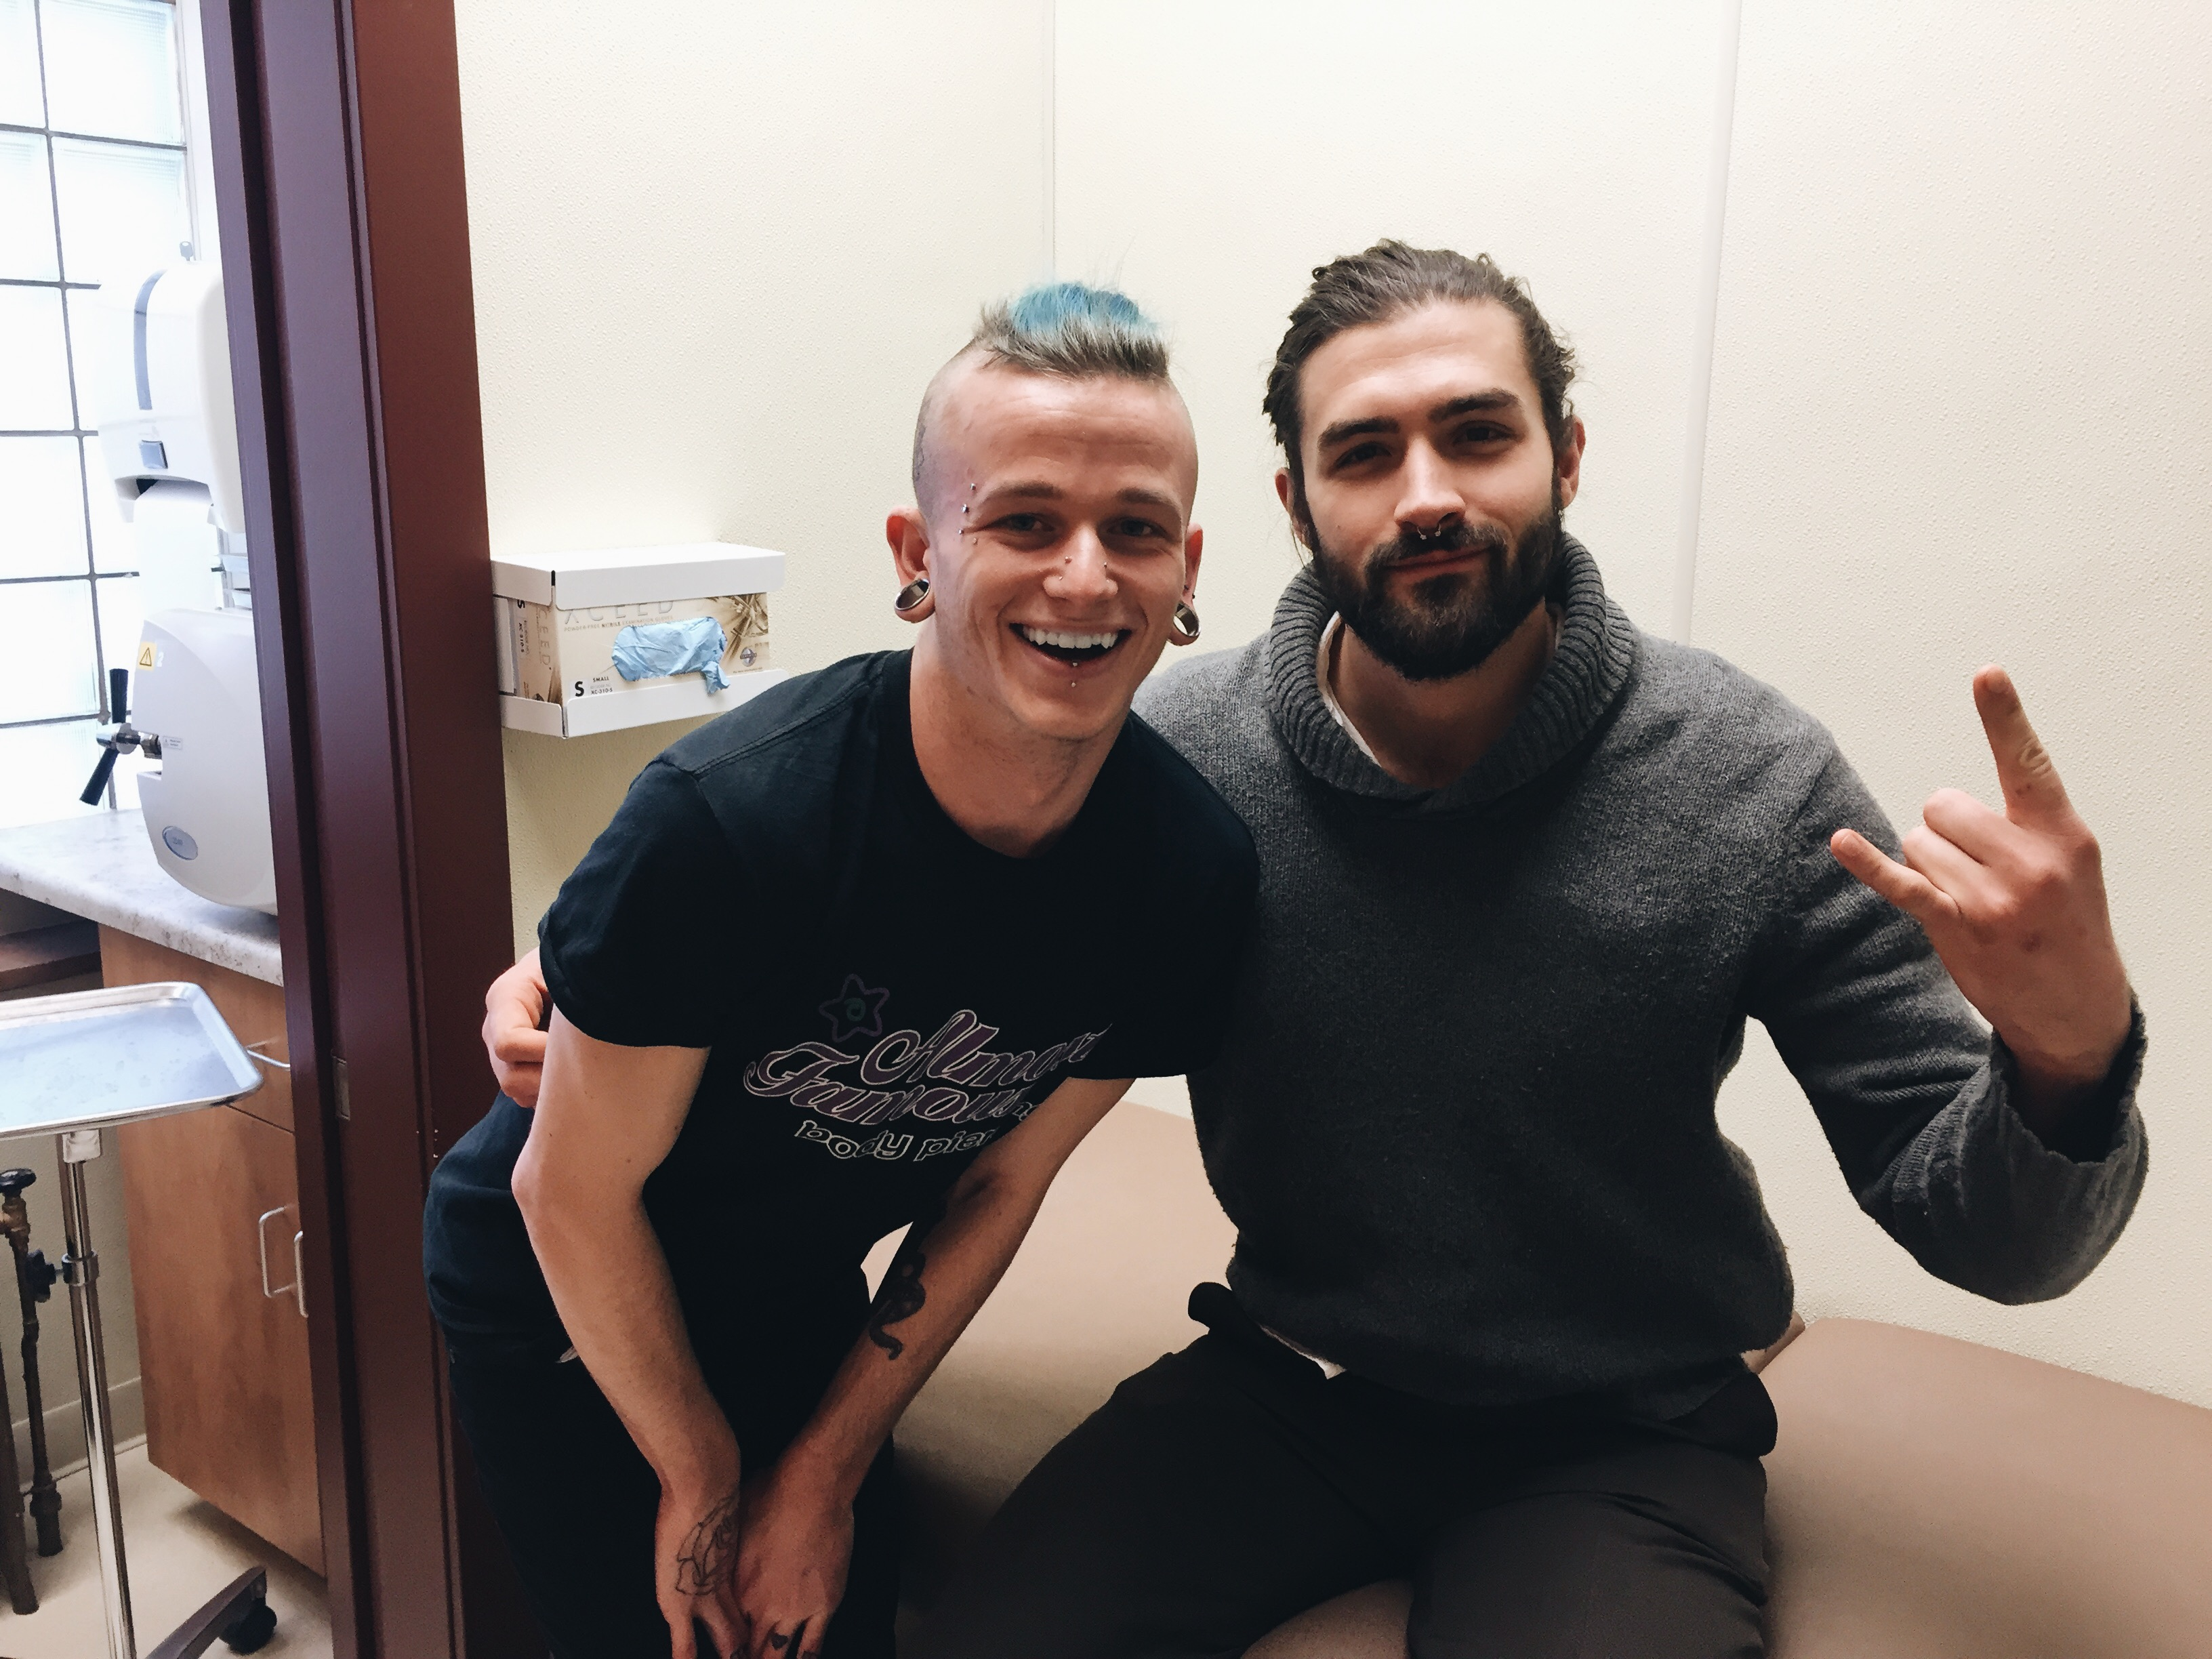 piercing technician poses with newly pierced person